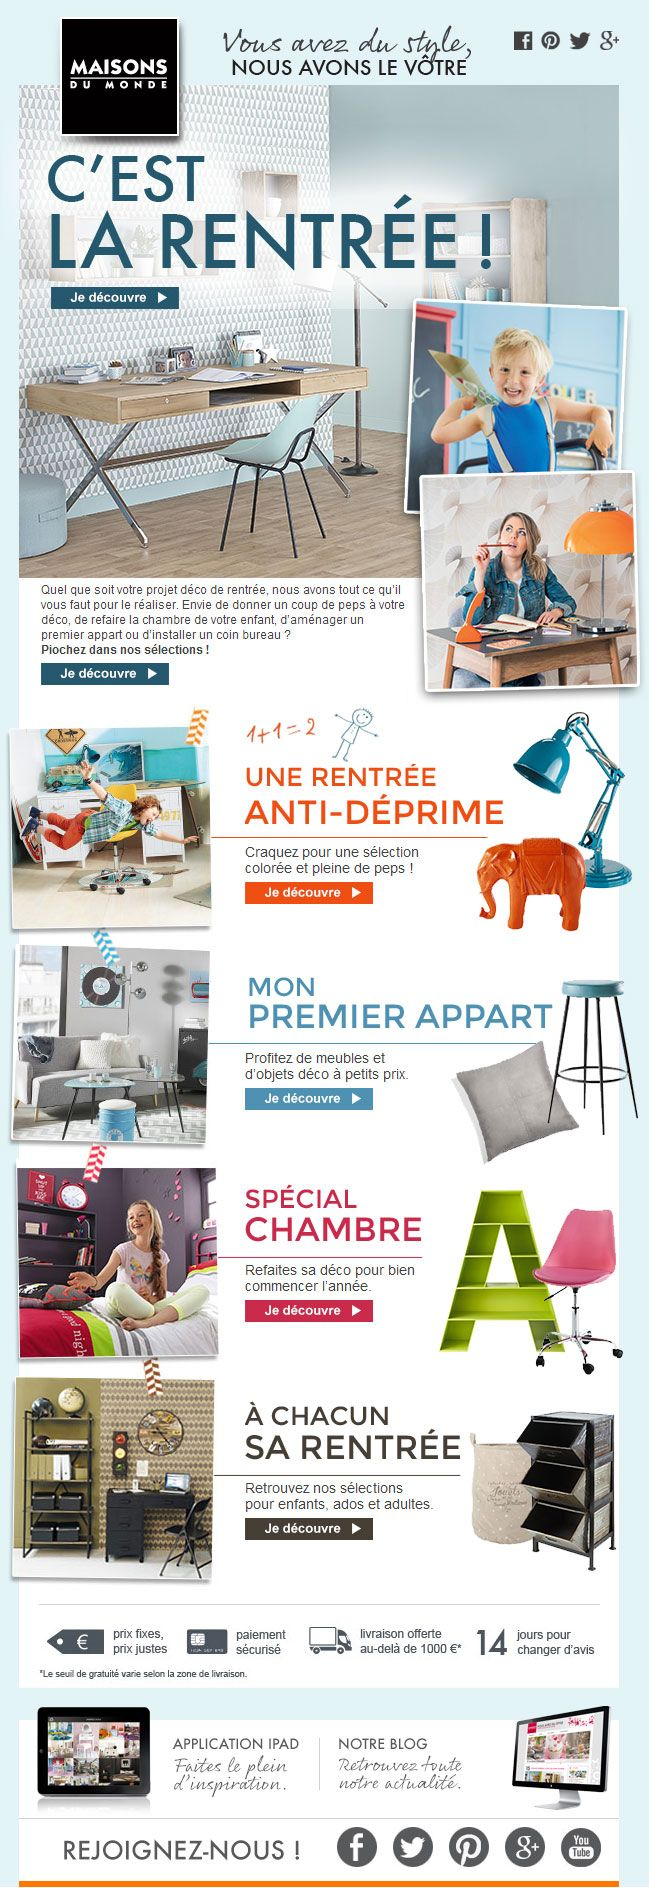 trendy rentre quoi ressemblera la vtre maisons du monde sept with coupon reduction maison du monde. Black Bedroom Furniture Sets. Home Design Ideas